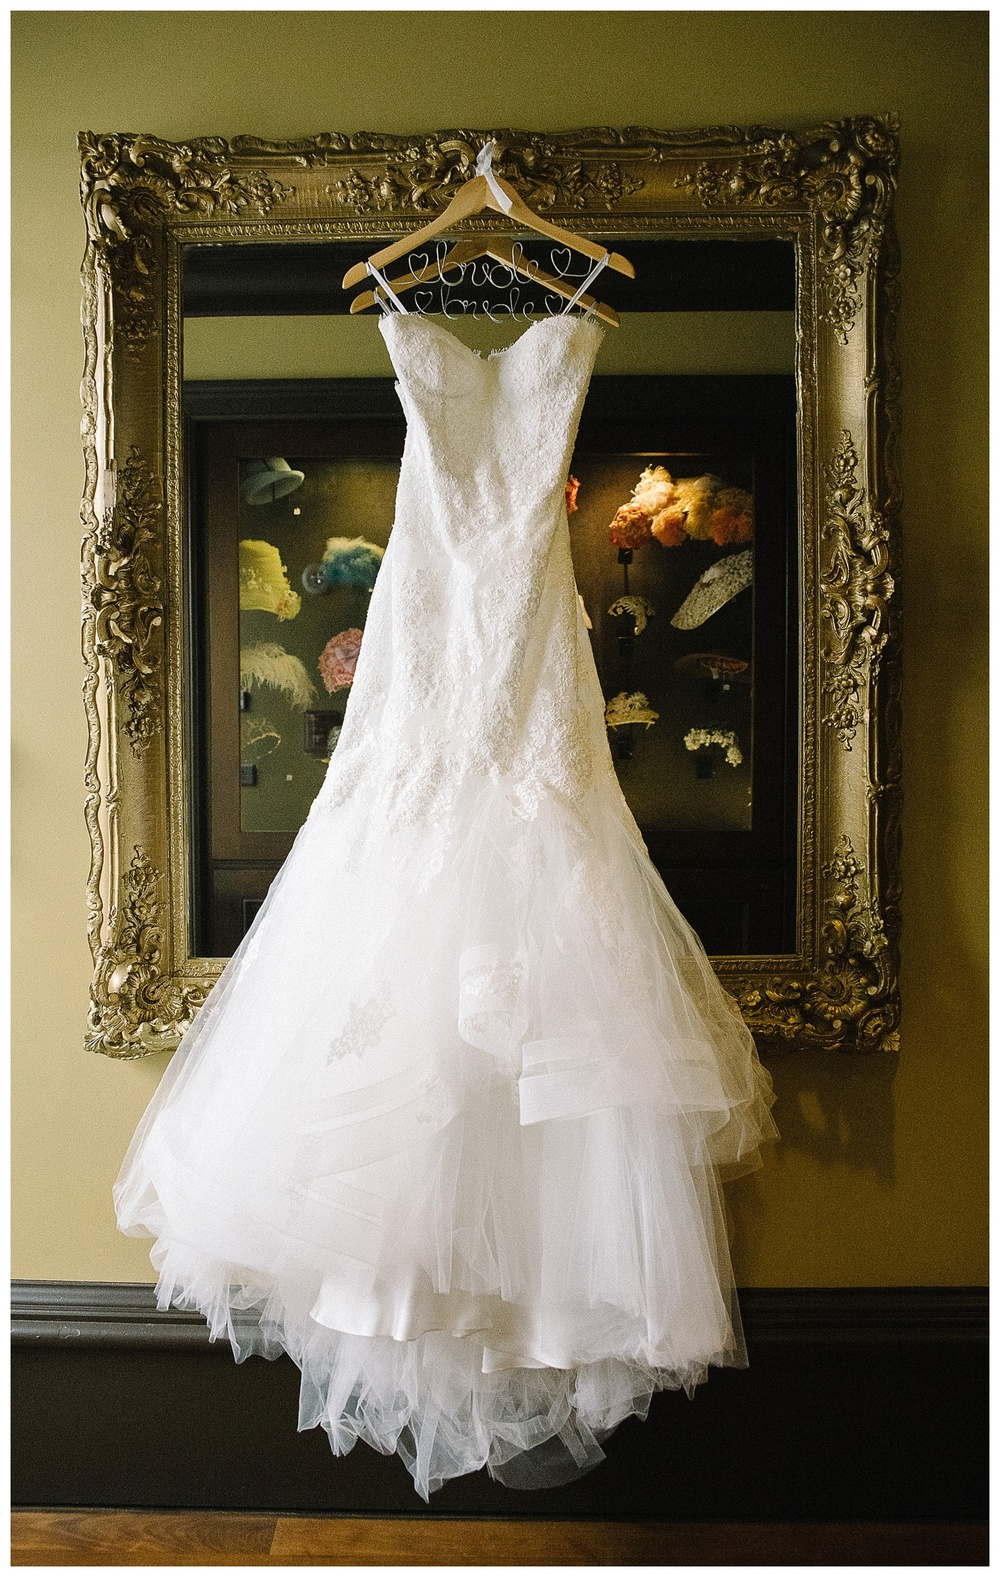 Bride's dress hanging inside Mansion Forsyth Park